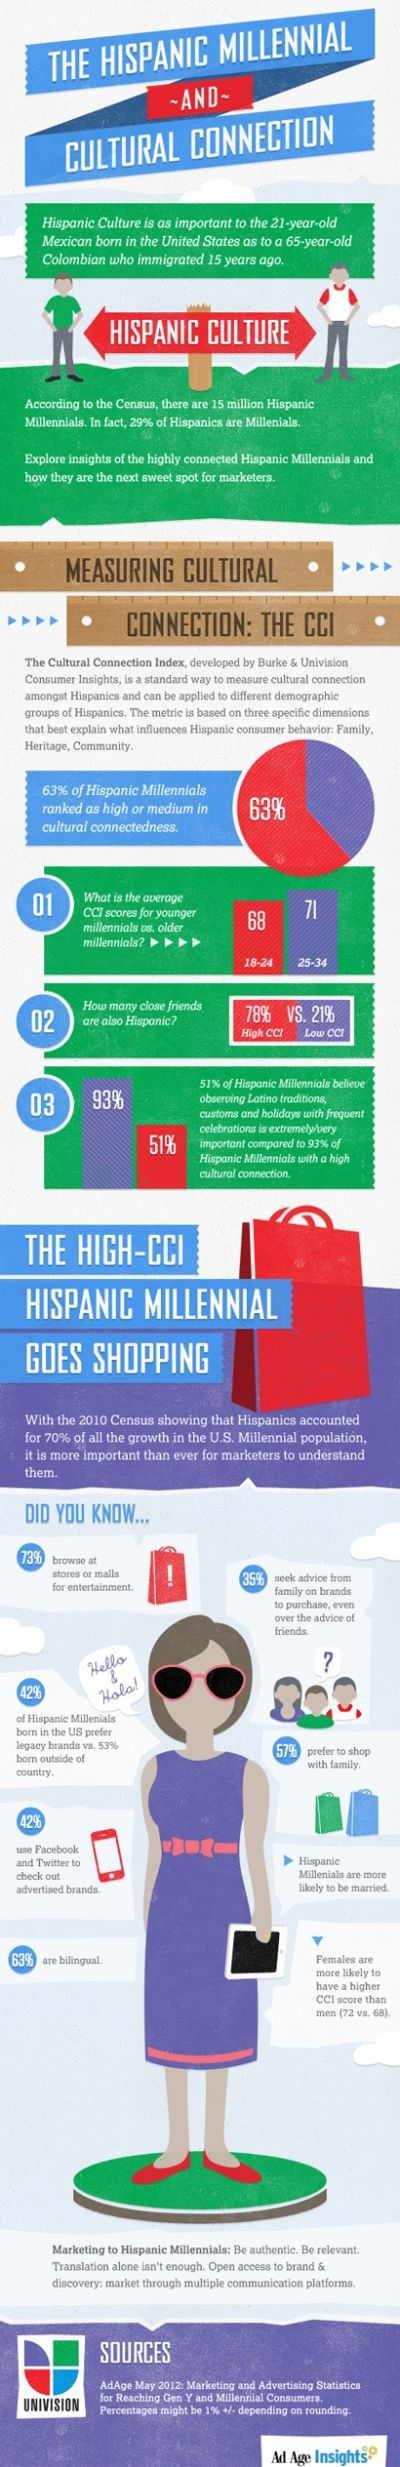 The Cultural Connection | Hispanic Marketing - Advertising Age